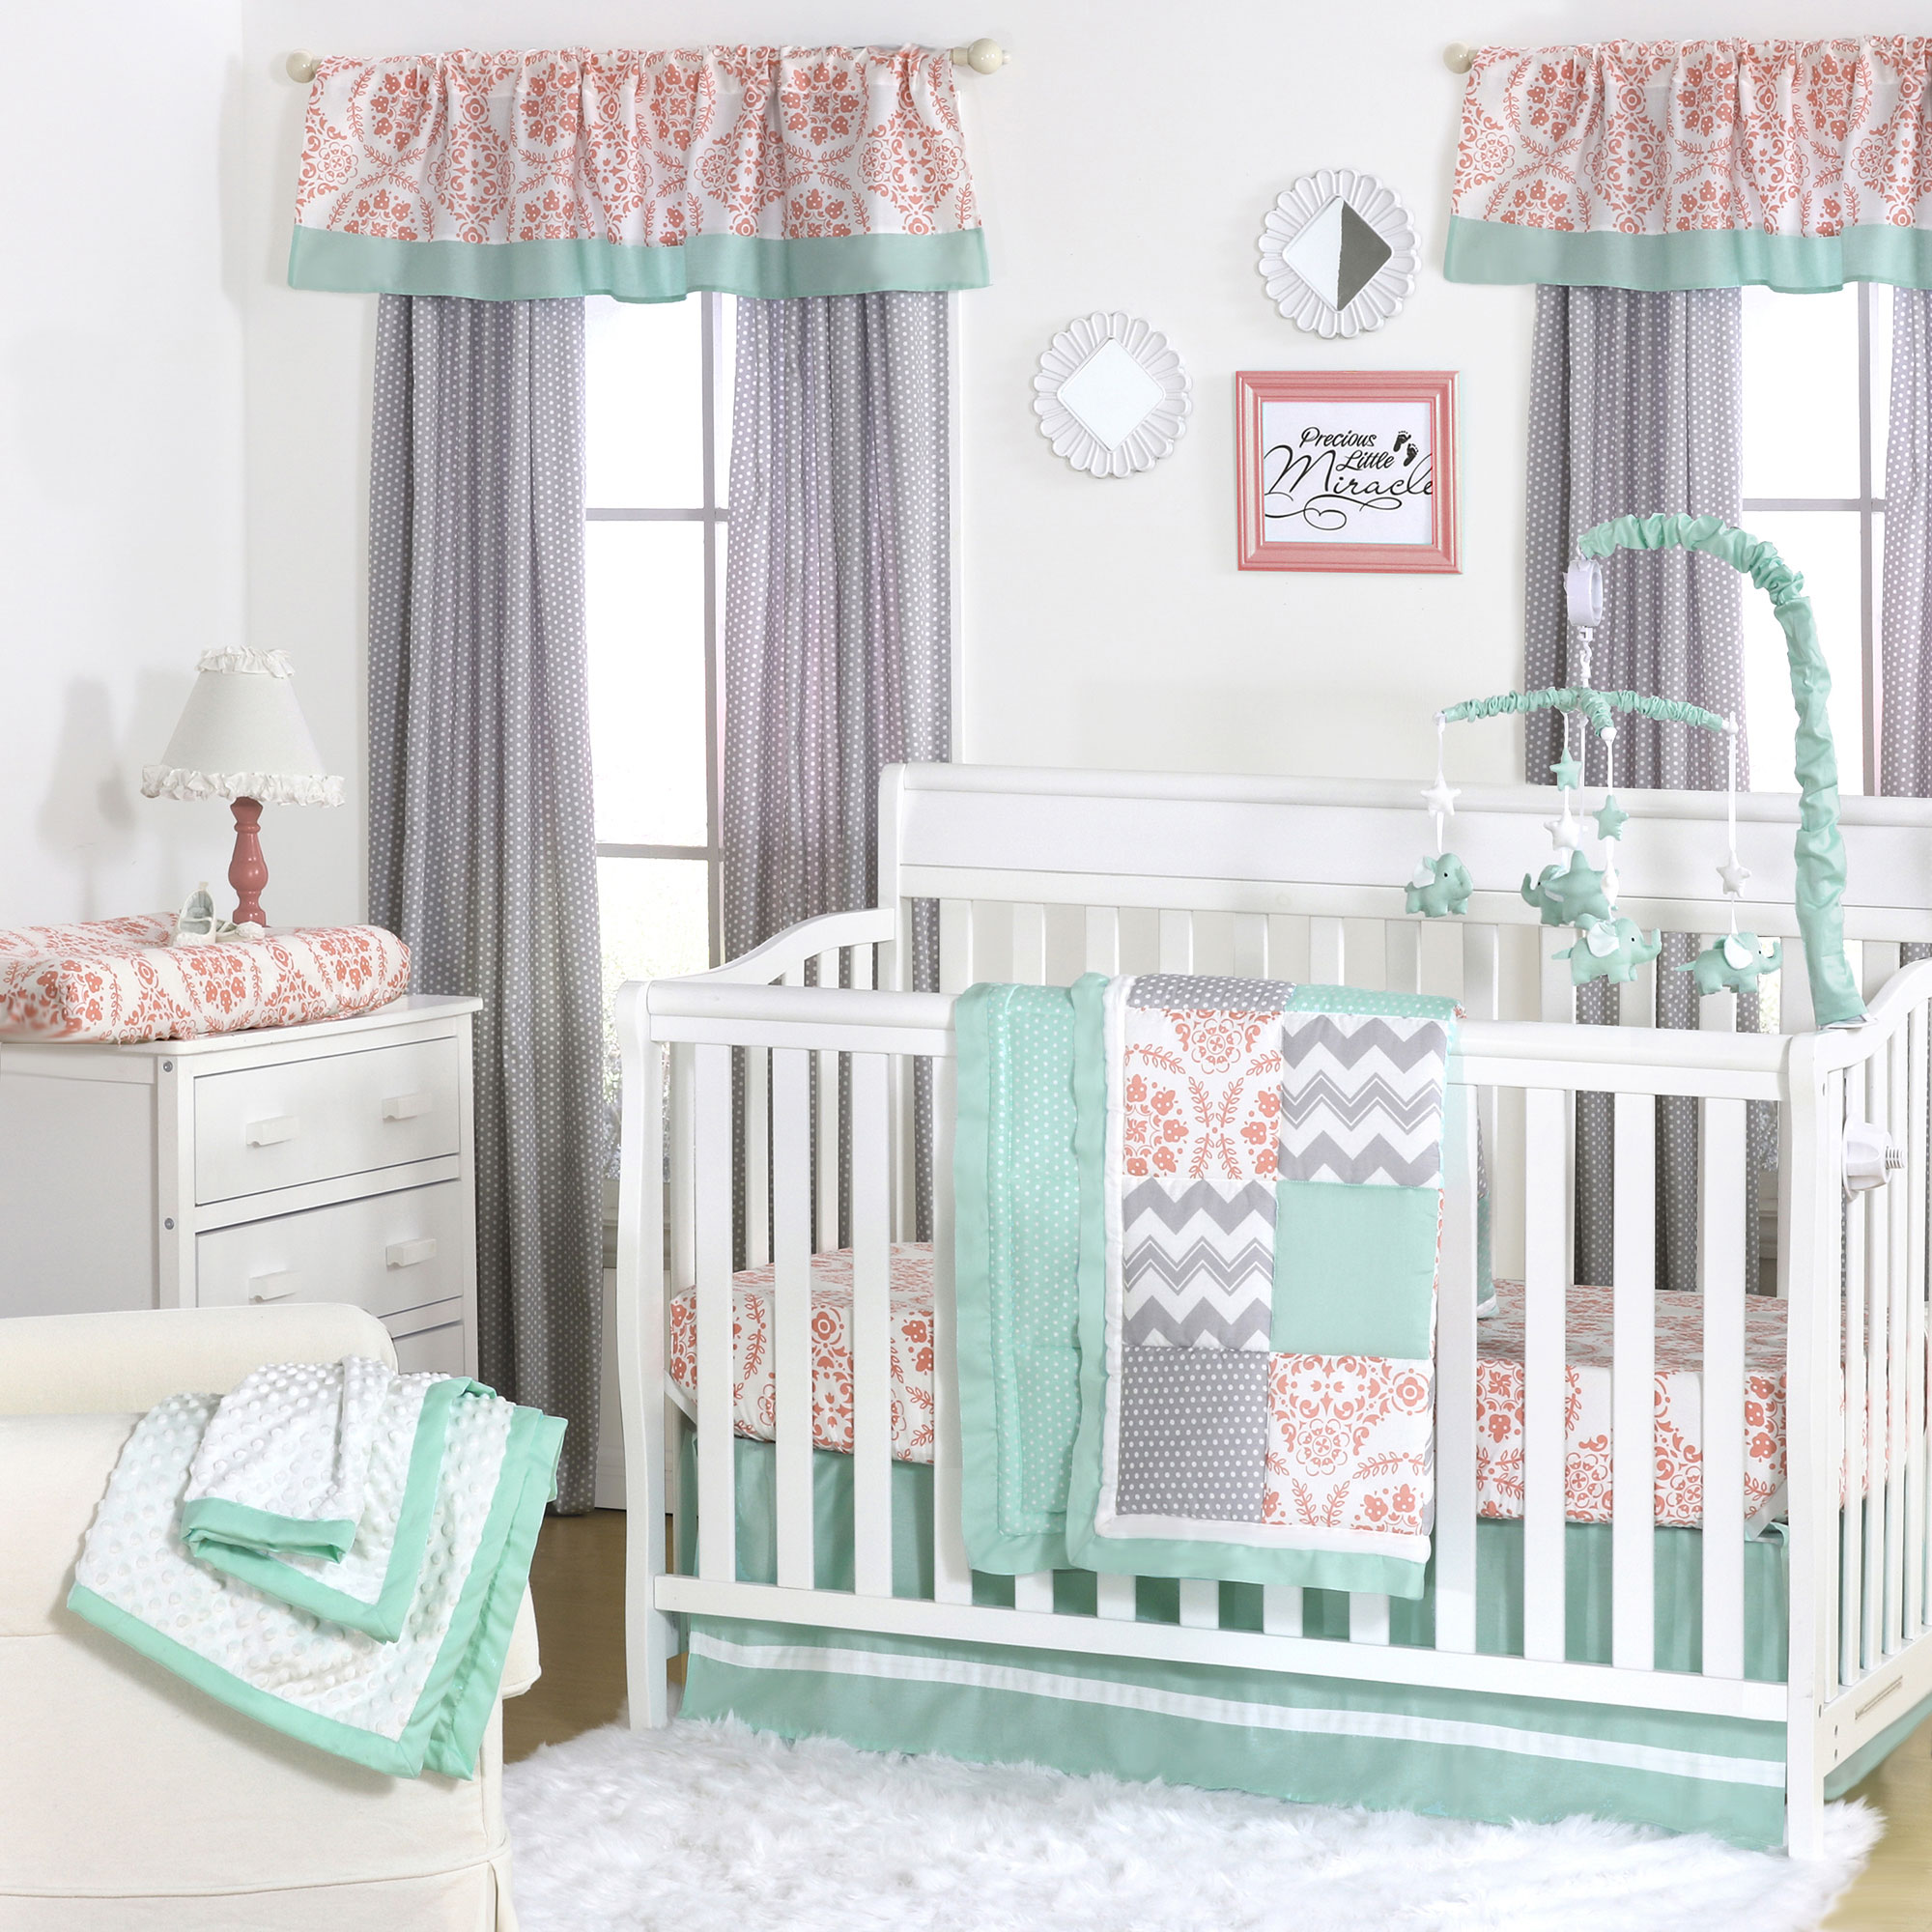 Details about Mint, Coral and Grey Patchwork 3 Piece Baby Crib Bedding Set  by The Peanut Shell